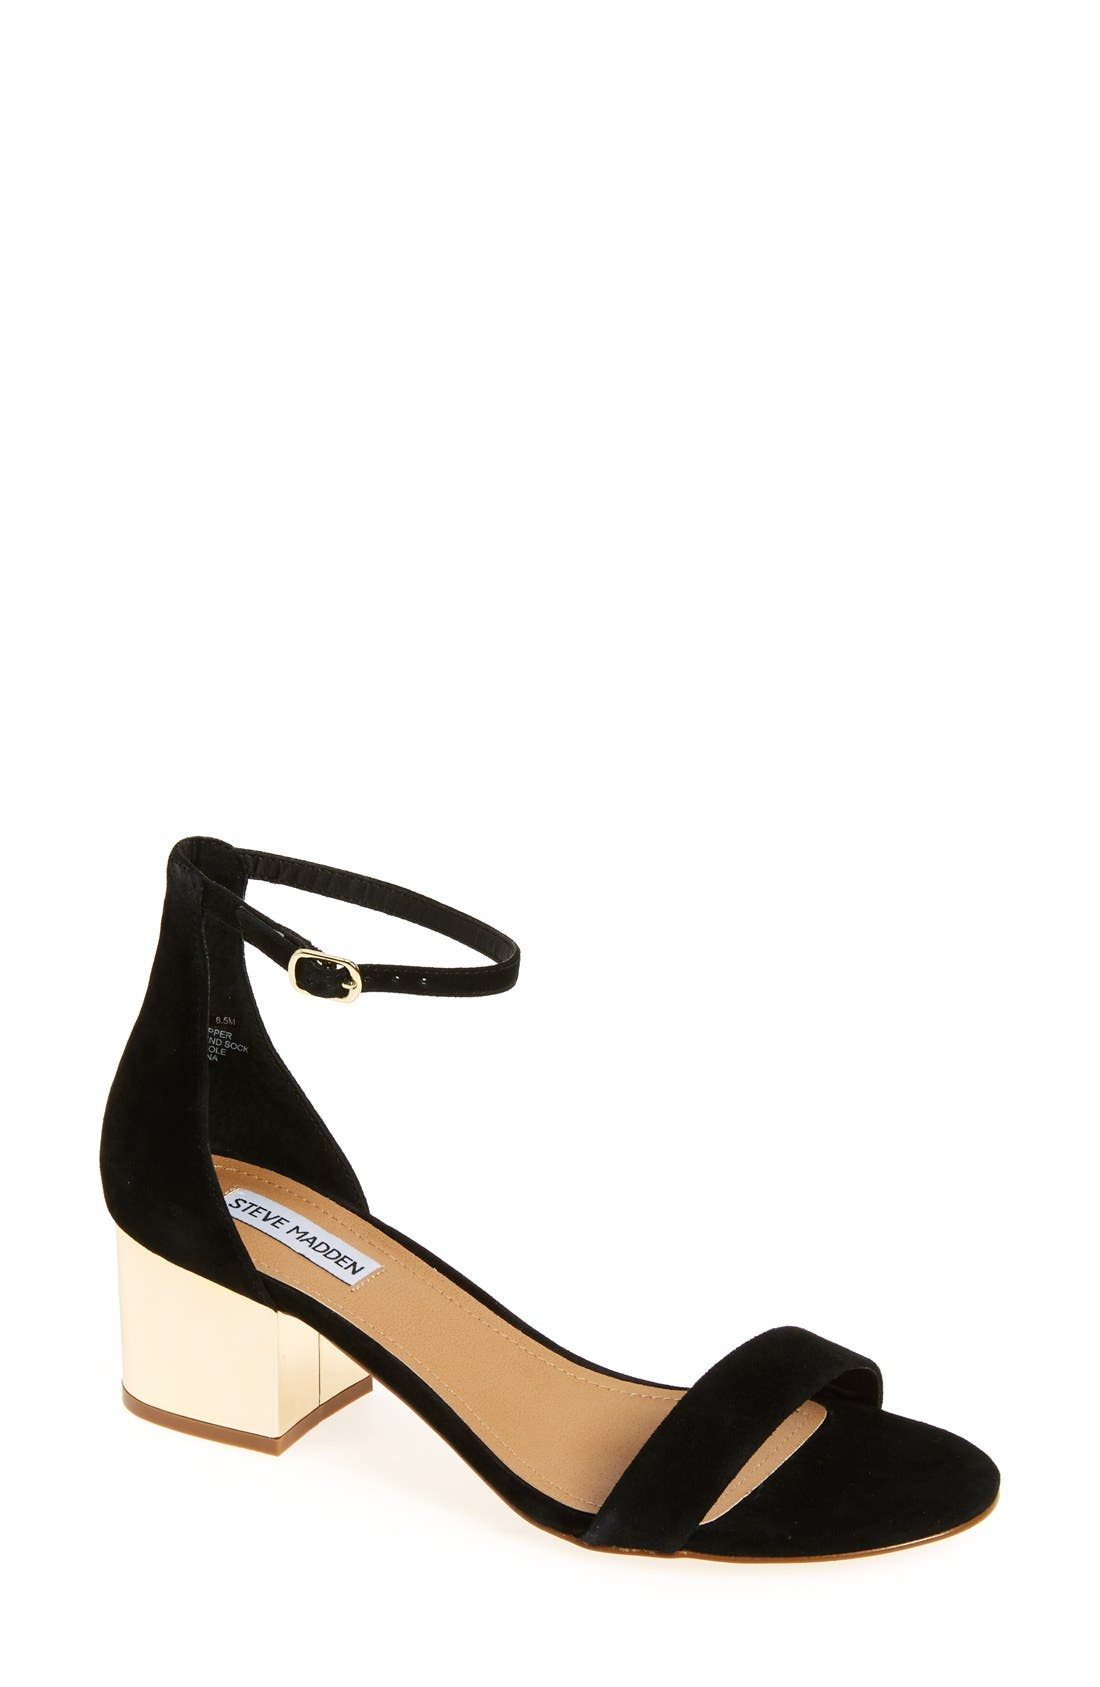 'Irenee-G' Mirror Block Heel Sandal,                             Main thumbnail 1, color,                             Black Suede